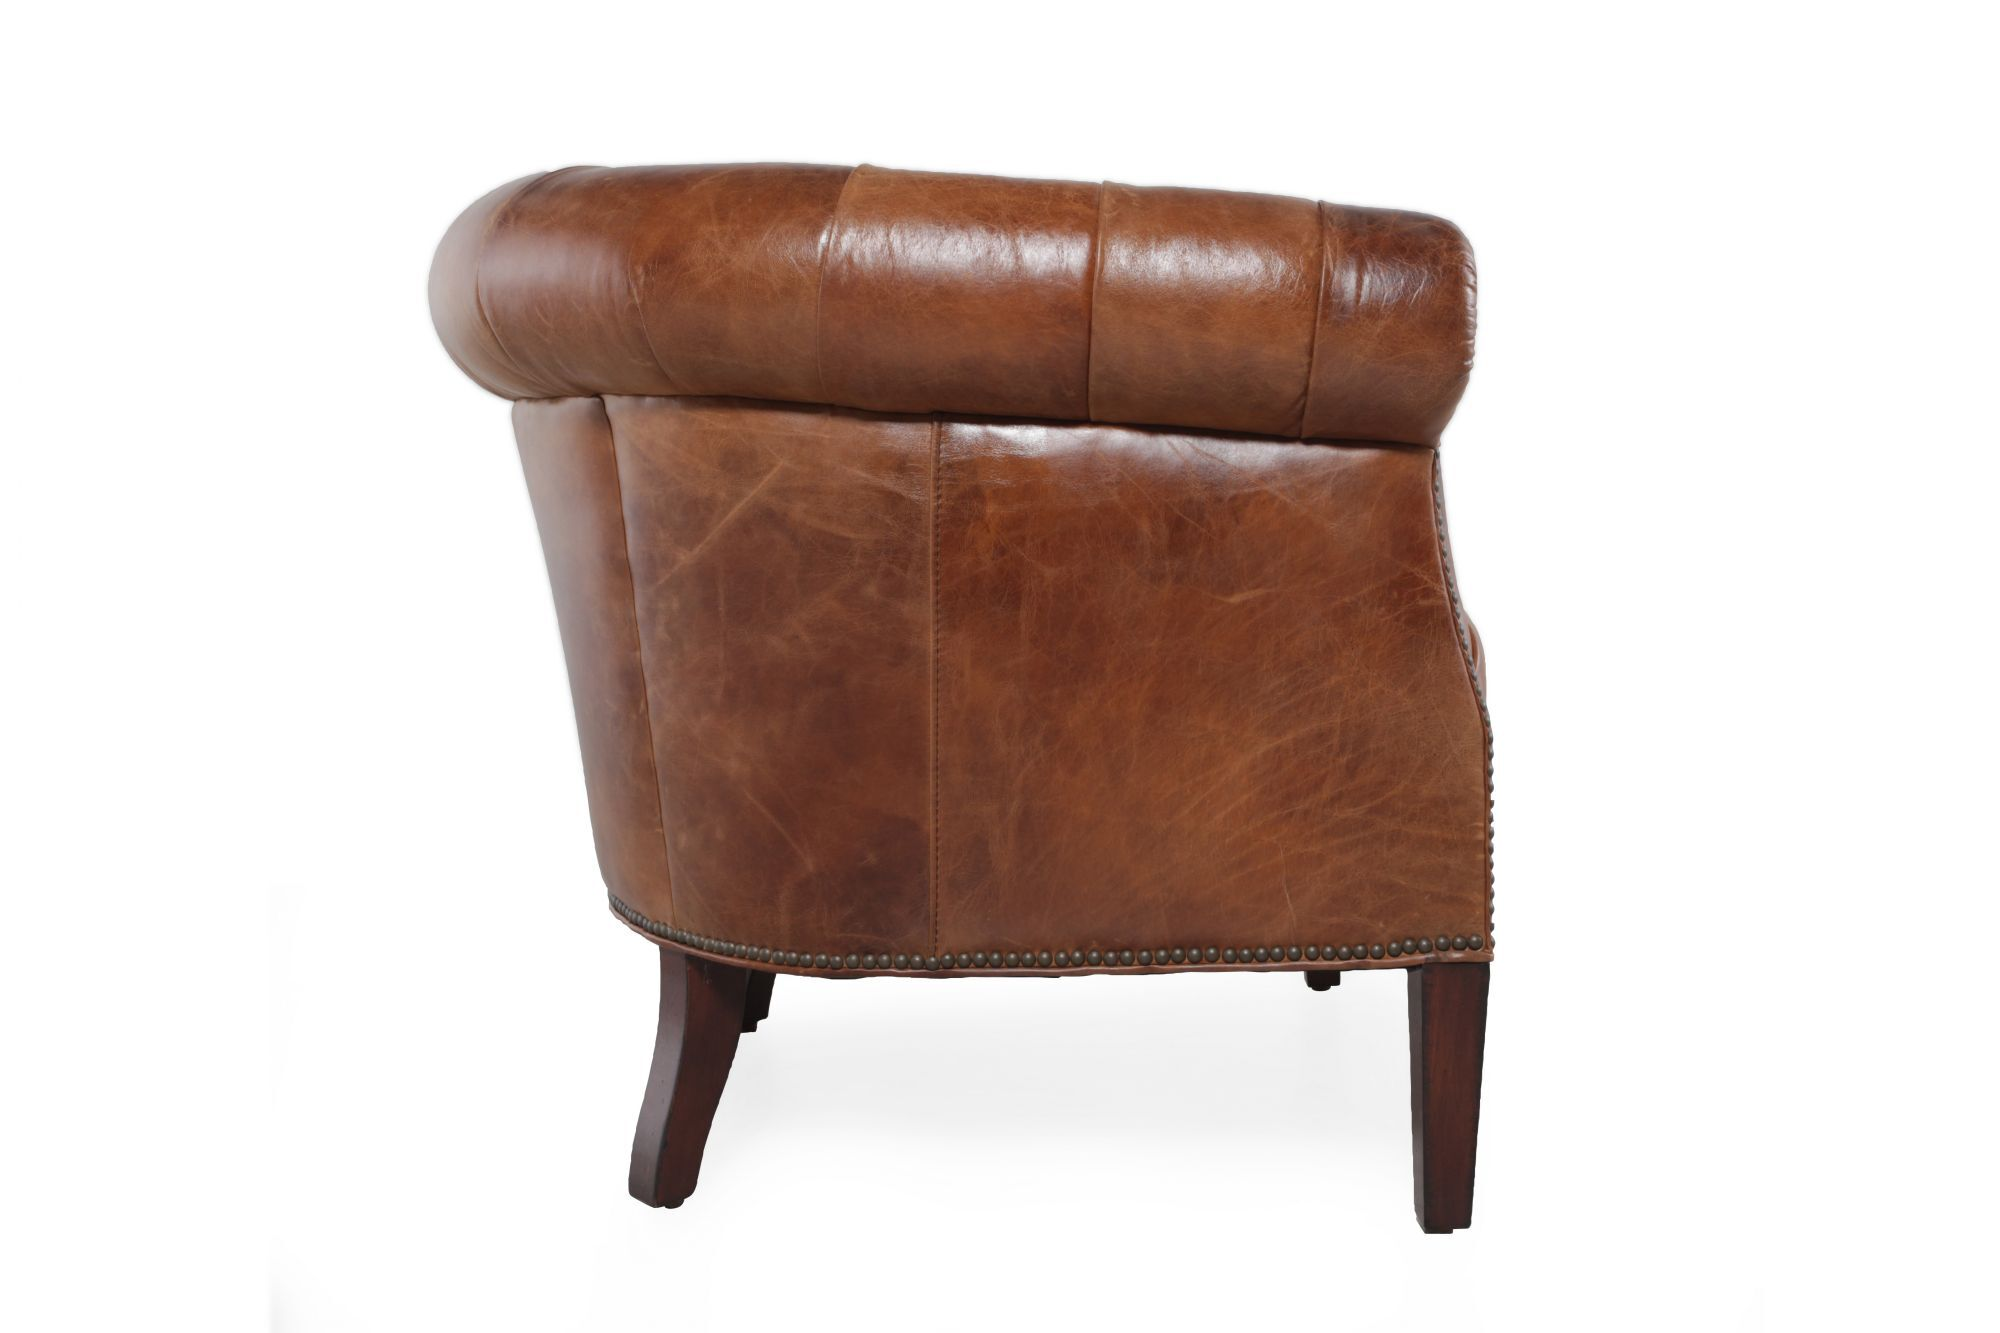 ButtonTufted Leather Tub Chair in Chestnut Brown  Mathis